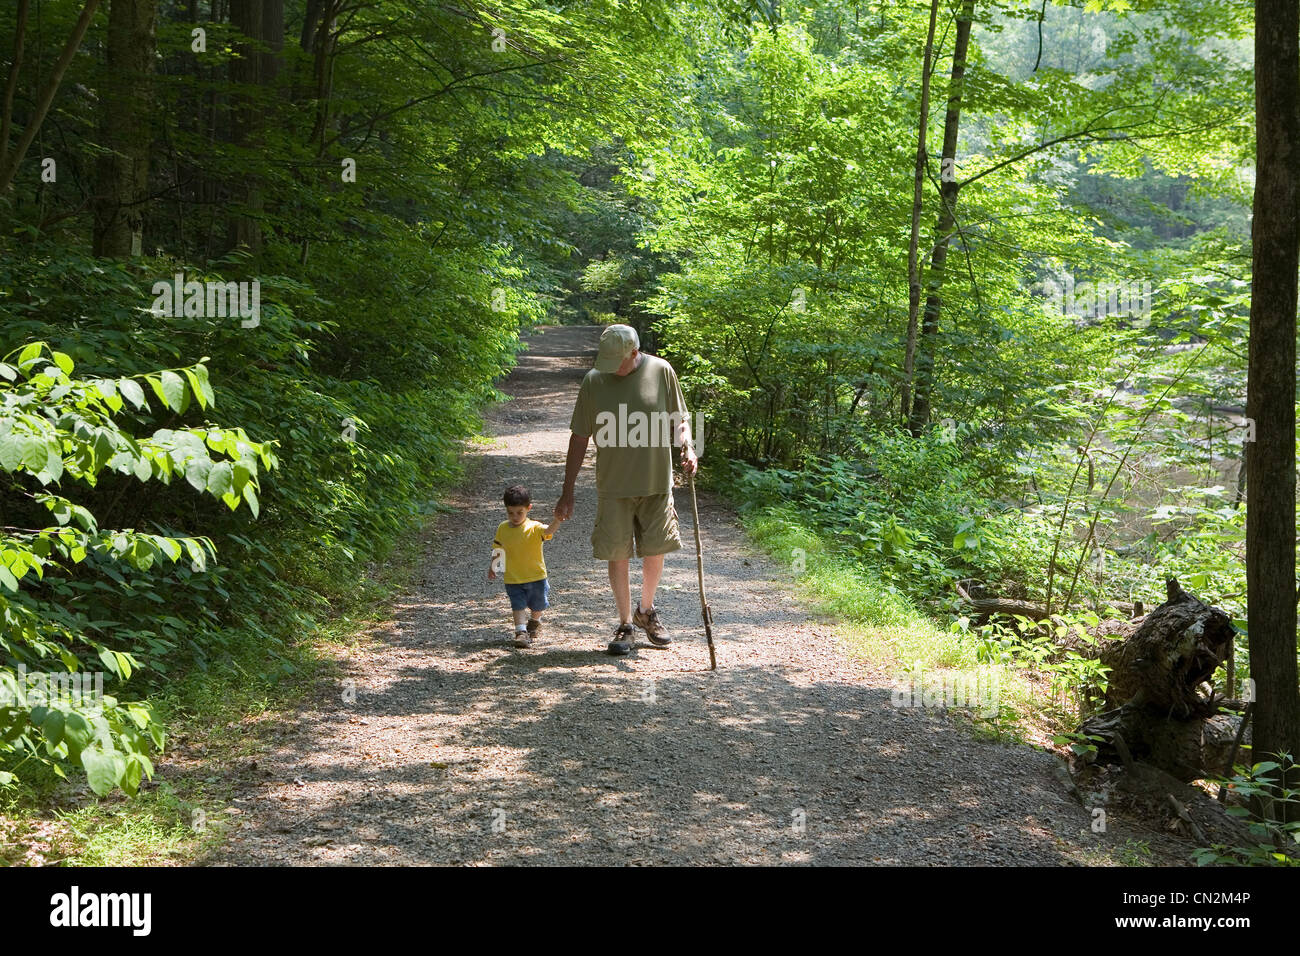 Grandfather and grandson walking along forest path - Stock Image